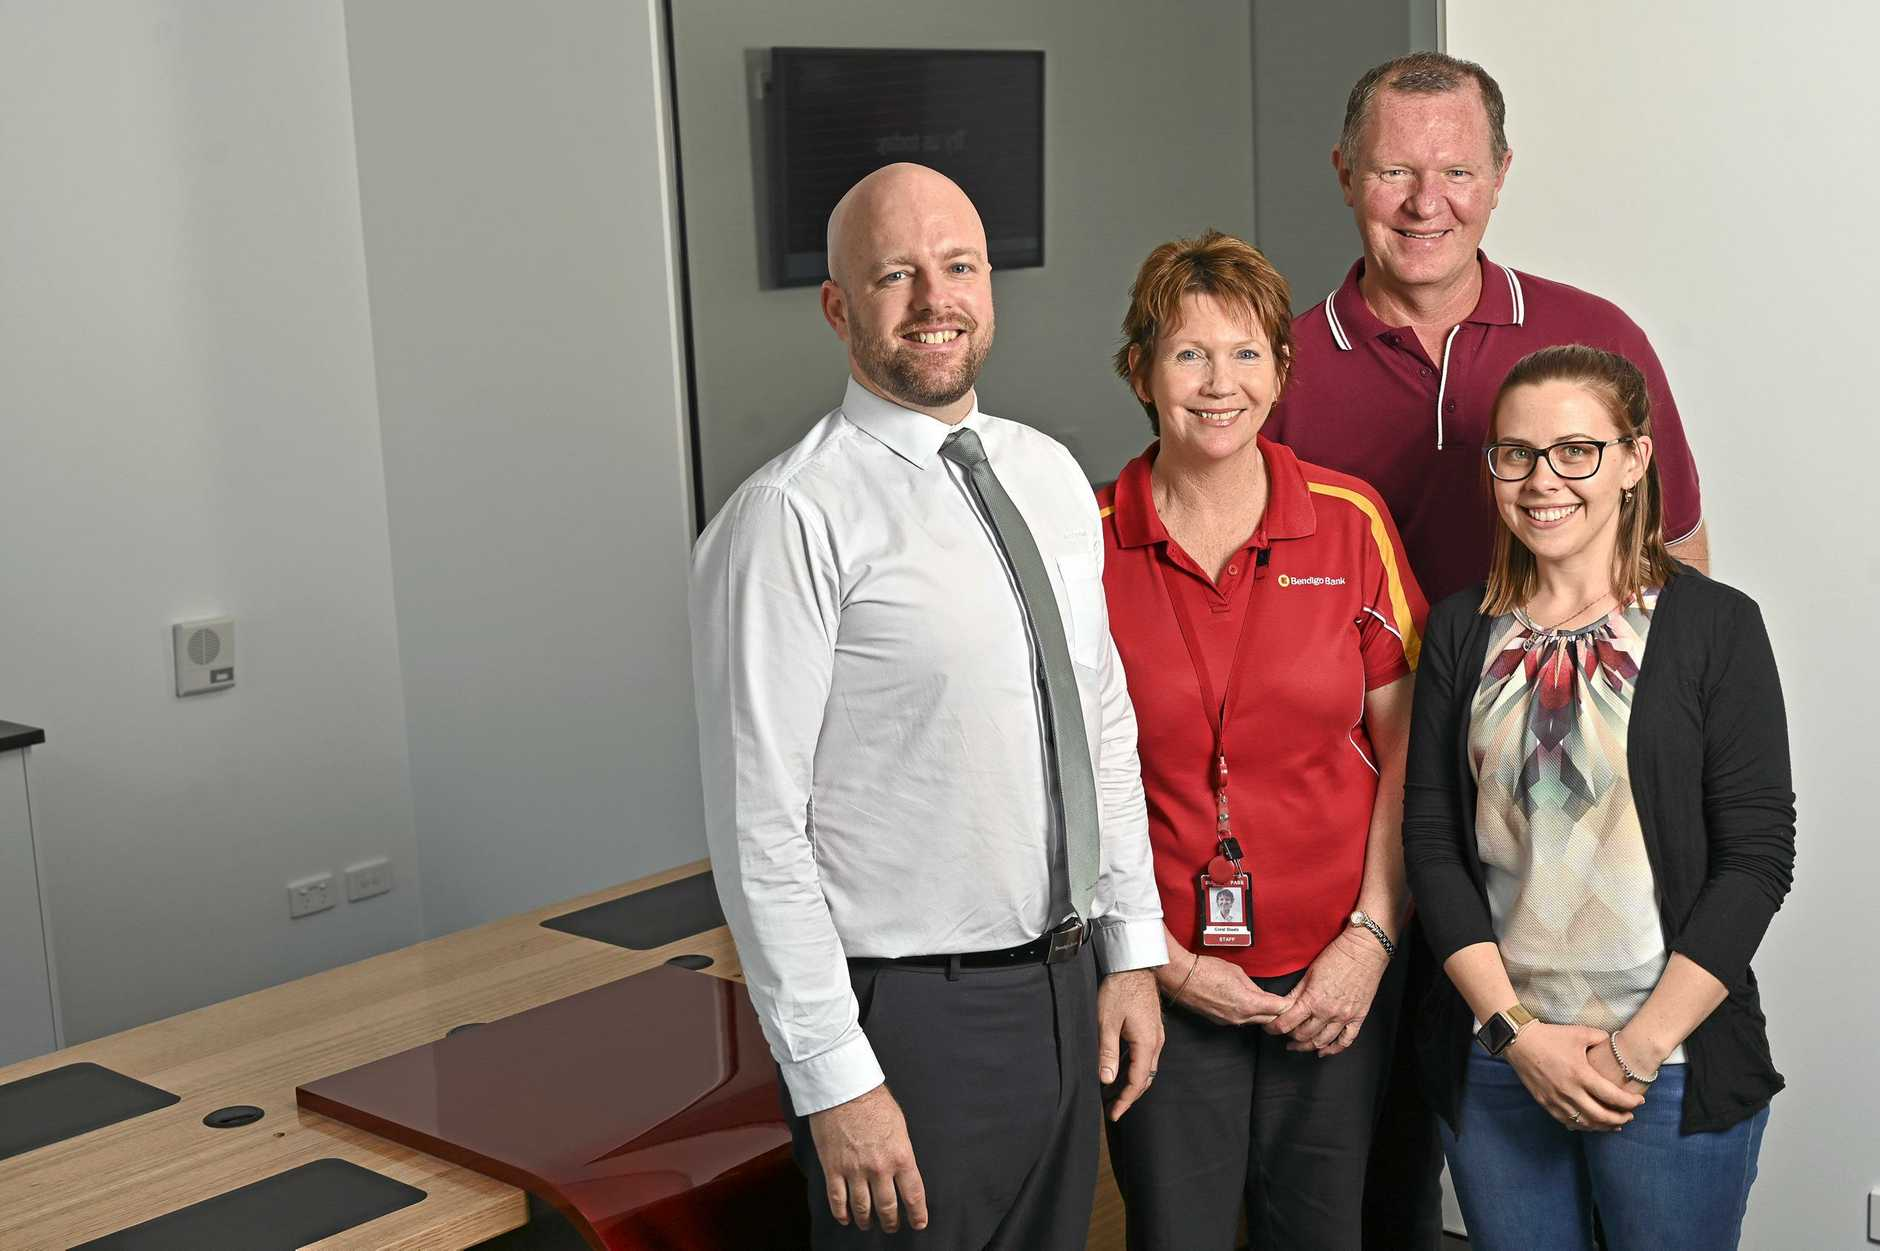 NEW HOME: Bendigo Bank is moving its branch from the mall to a new premises on Tower Central on Brisbane St. Branch manager Michael Anderson with staff Coral Staatz, Brad Berlin and Bernadette Beahan.